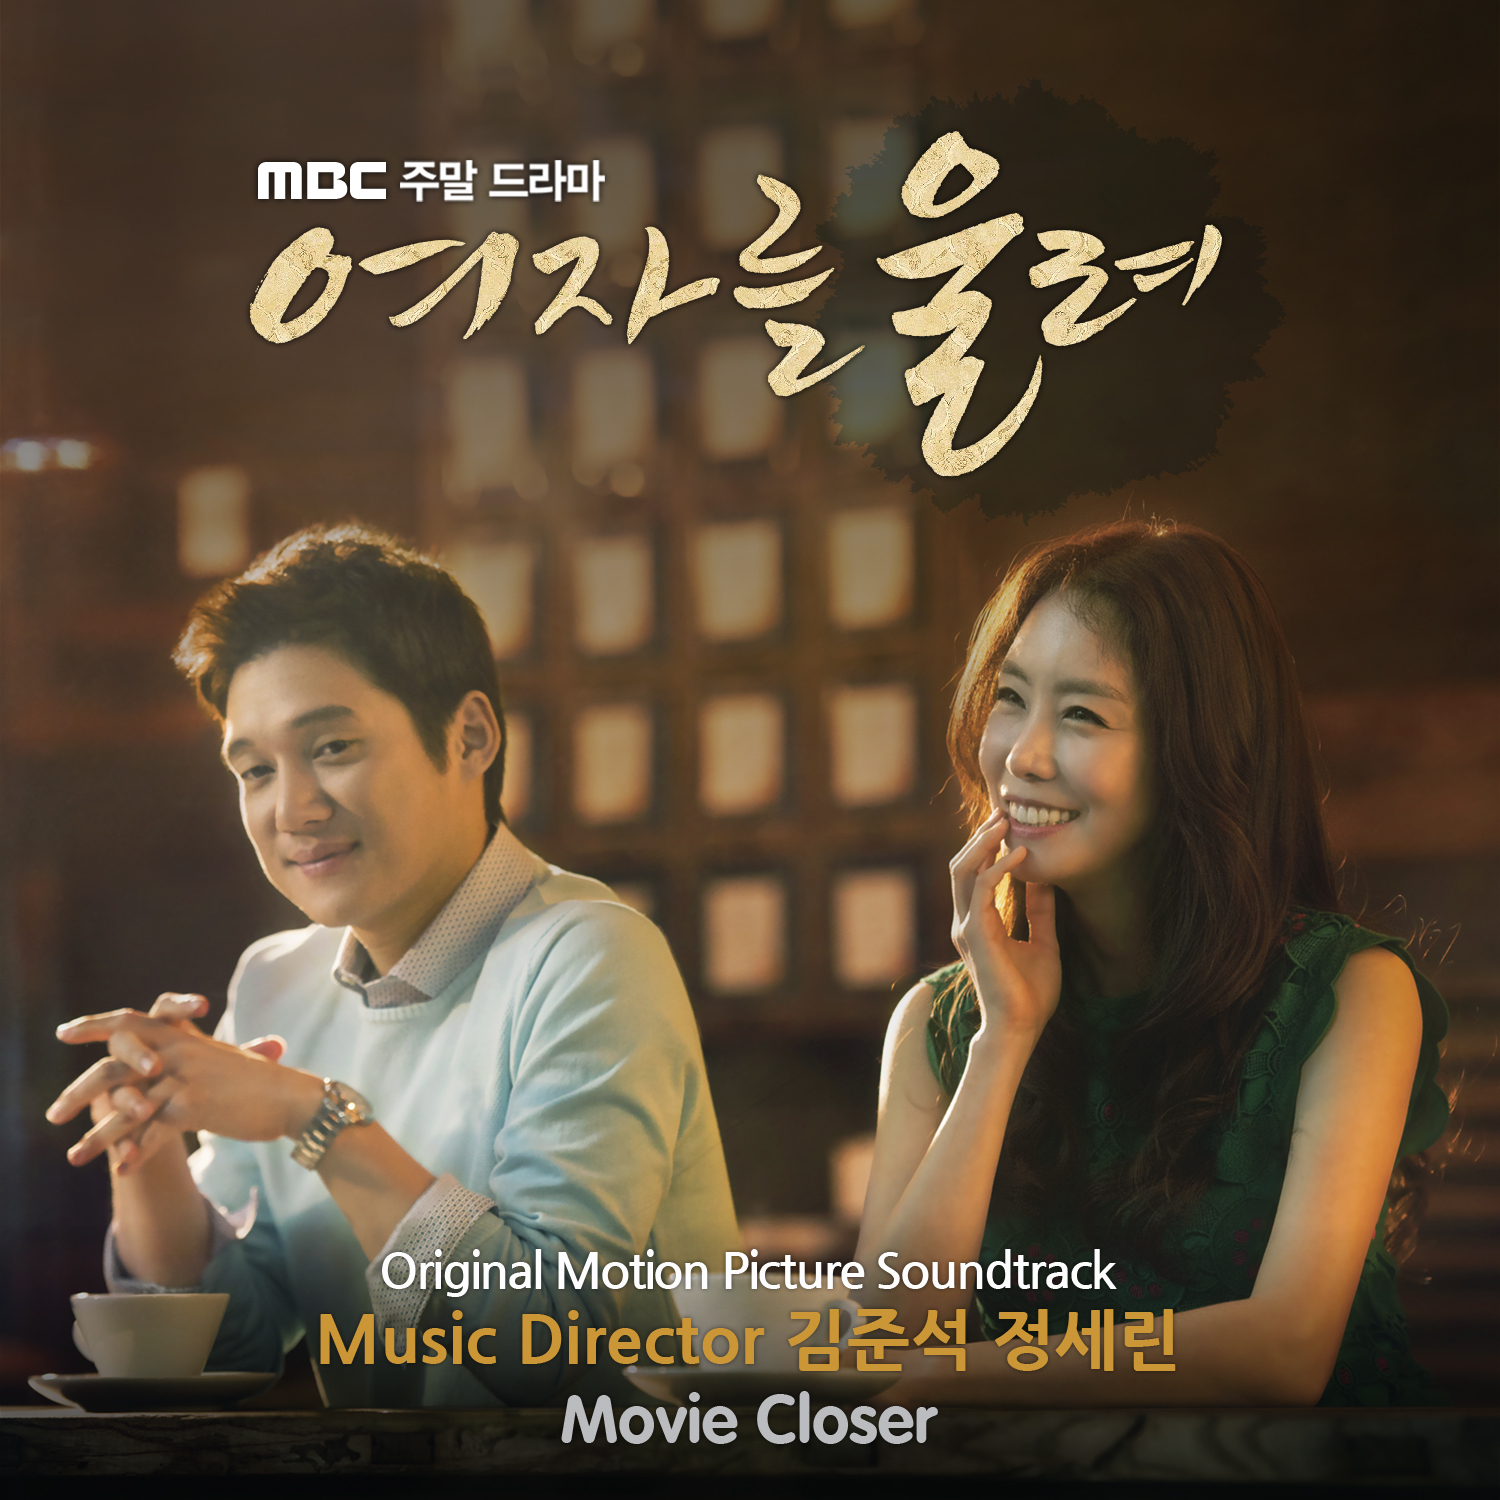 Make A Woman Cry OST (Full OST Album) - Various Artists K2Ost free mp3 download korean song kpop kdrama ost lyric 320 kbps